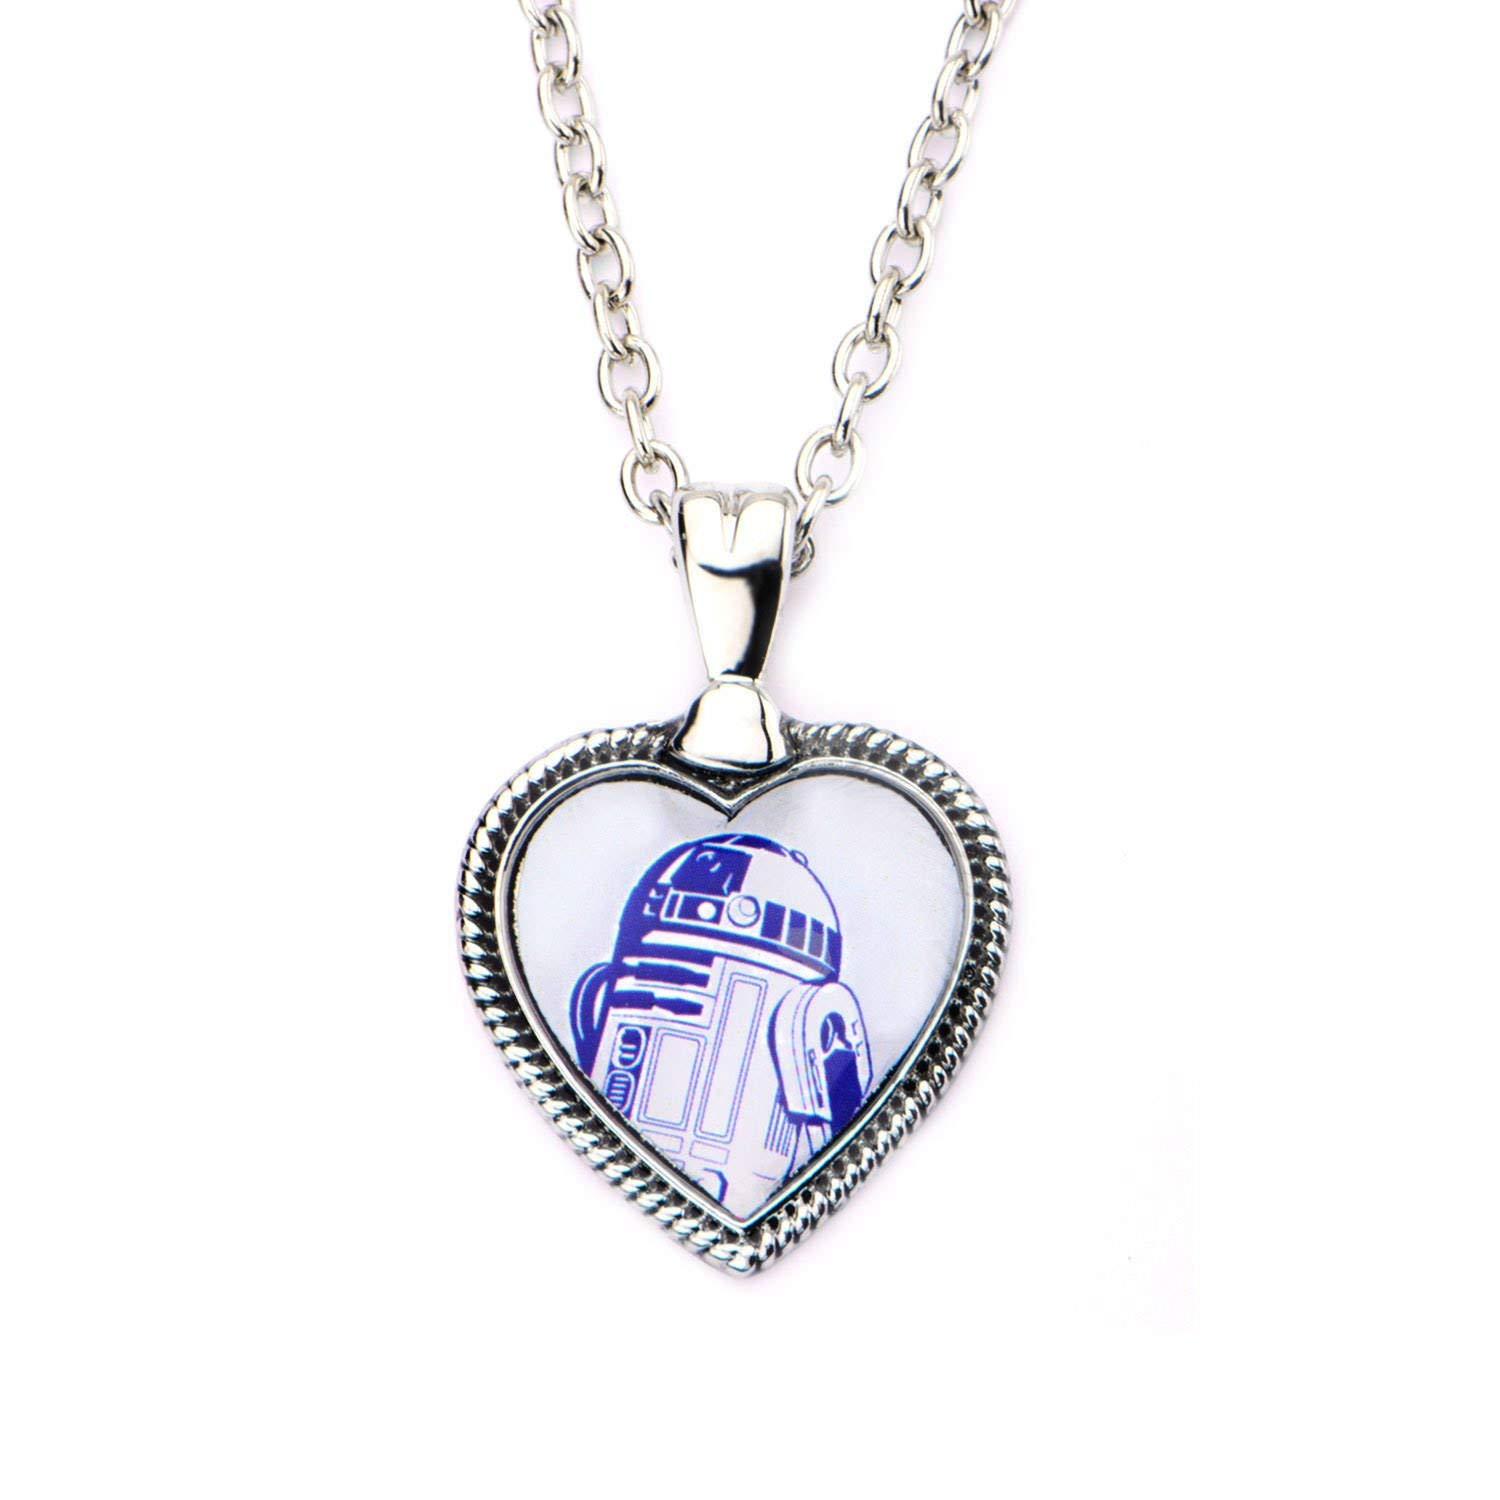 Star Wars R2-D2 heart shaped necklace at Amazon